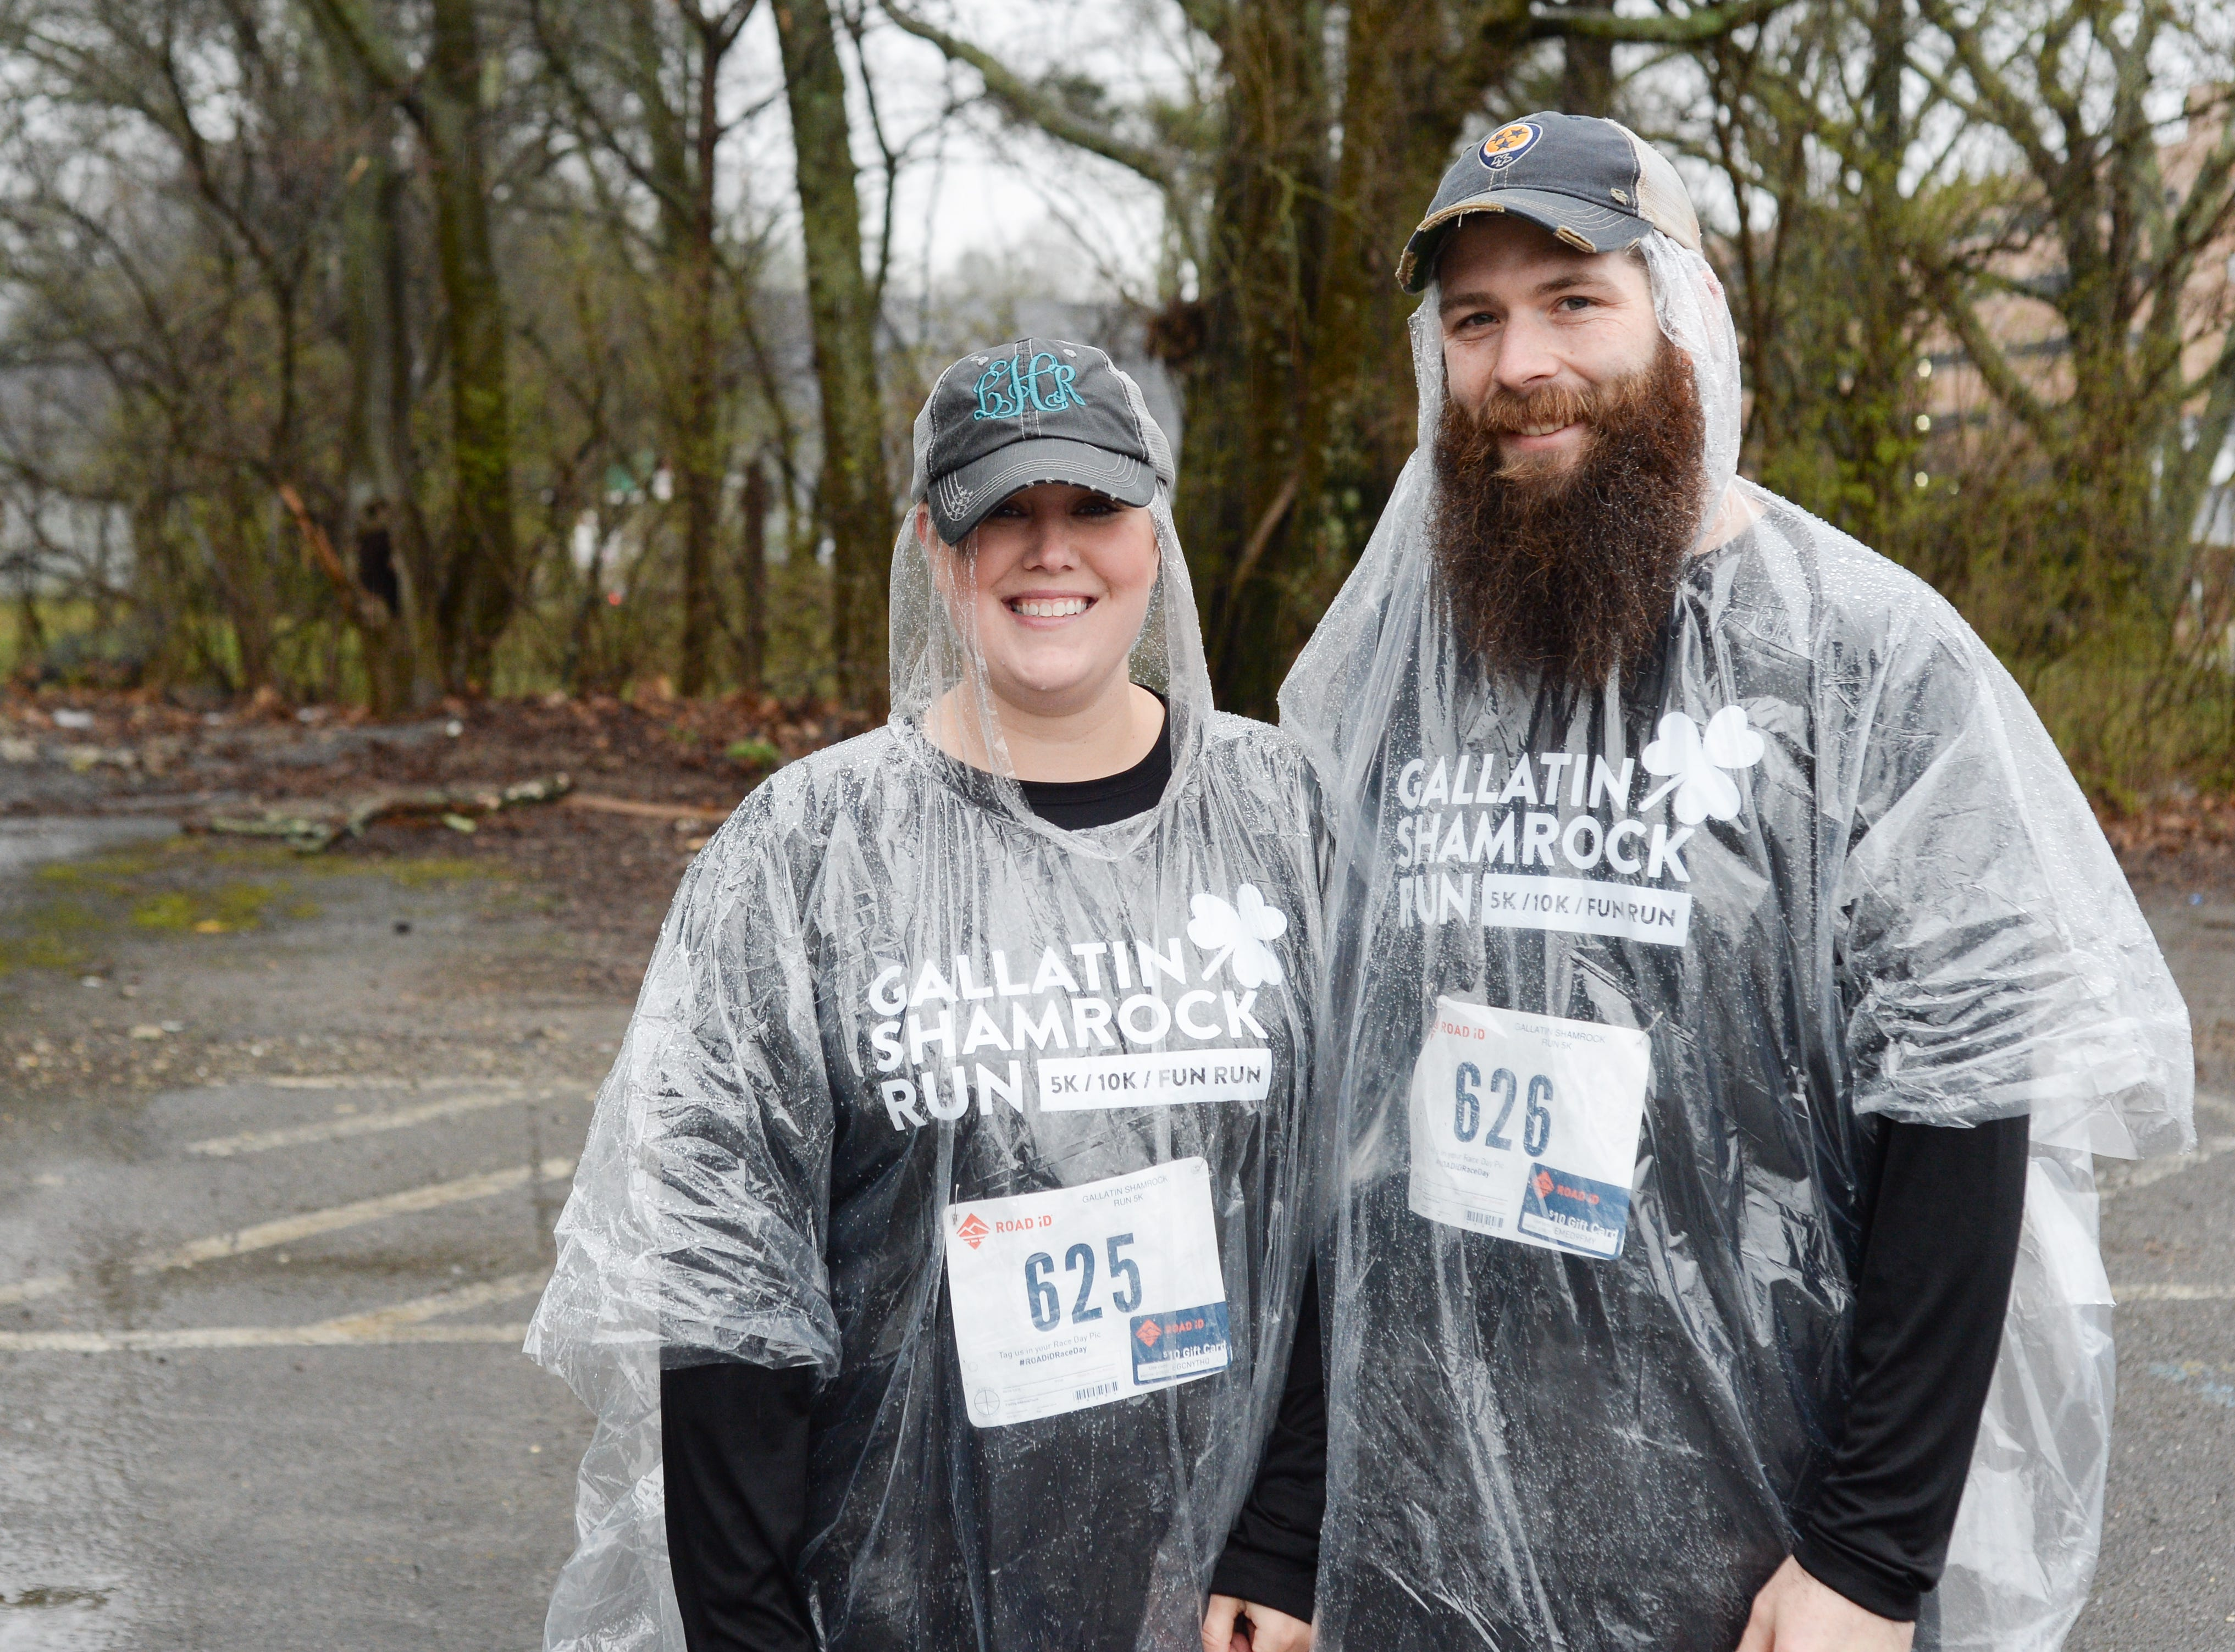 Lindsay and Victor Harned came prepared for rain during the Gallatin Shamrock Run on Saturday, March 9.